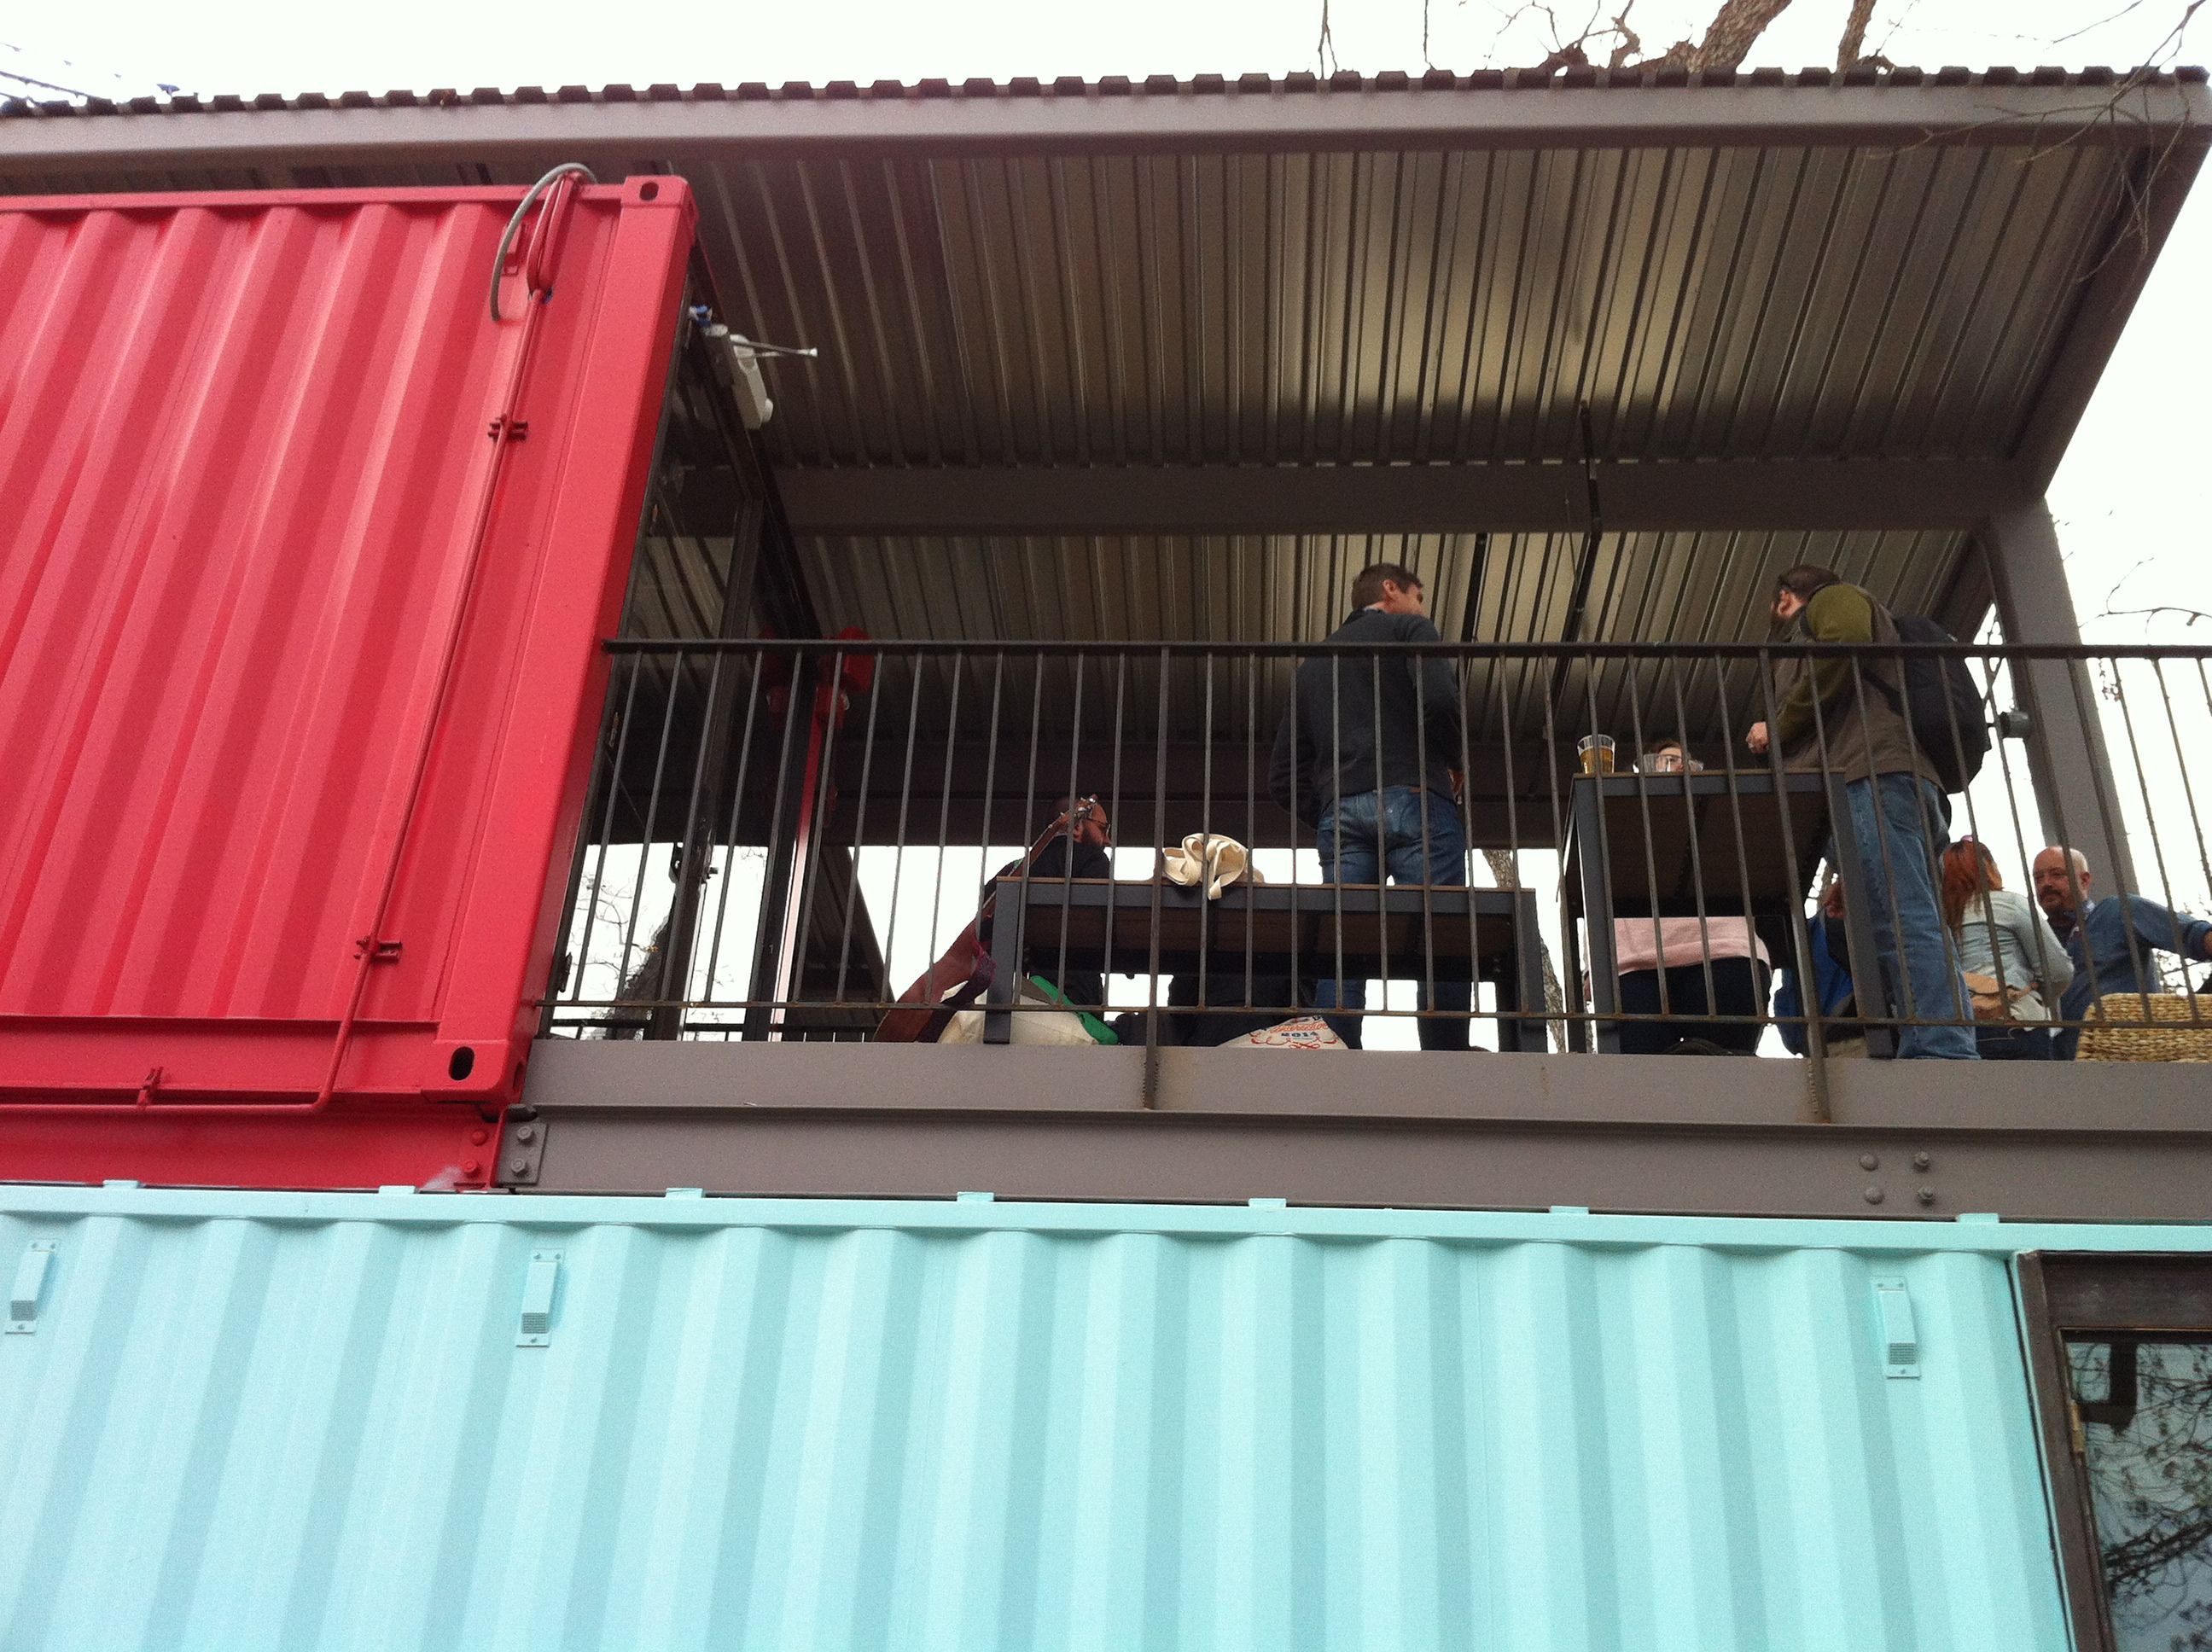 Container bar rainey street upper deck container bar